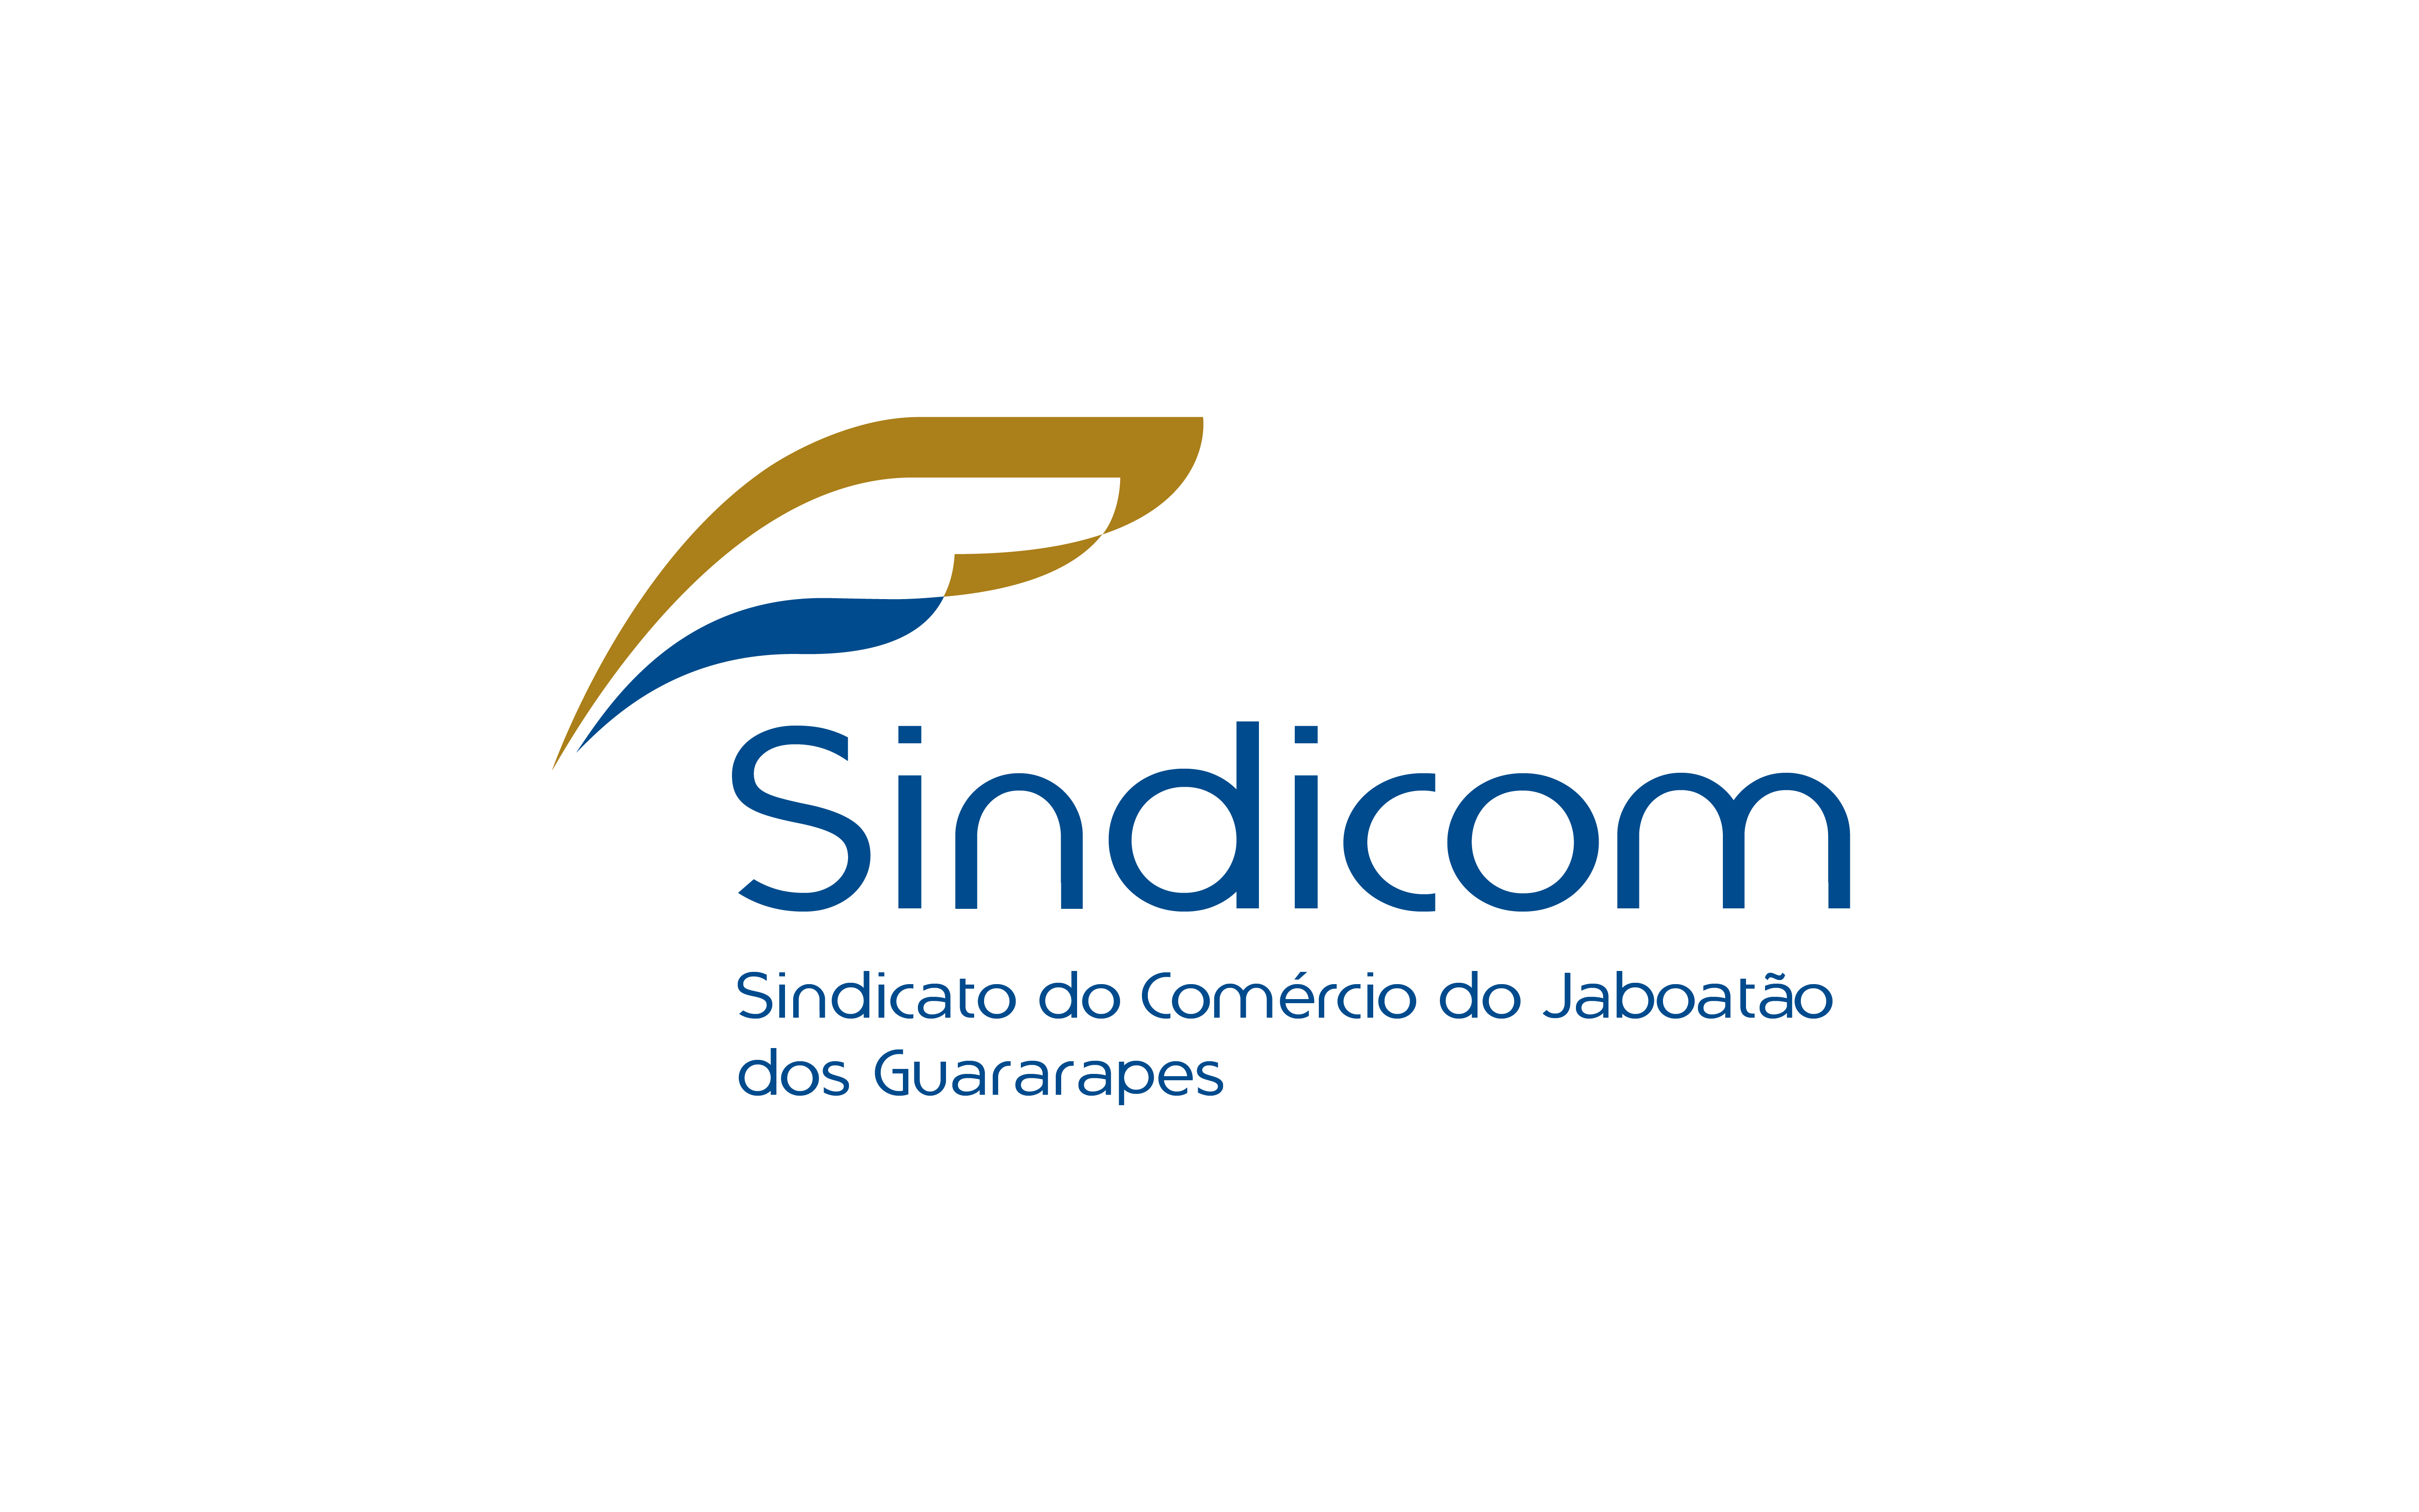 Sindicatos11